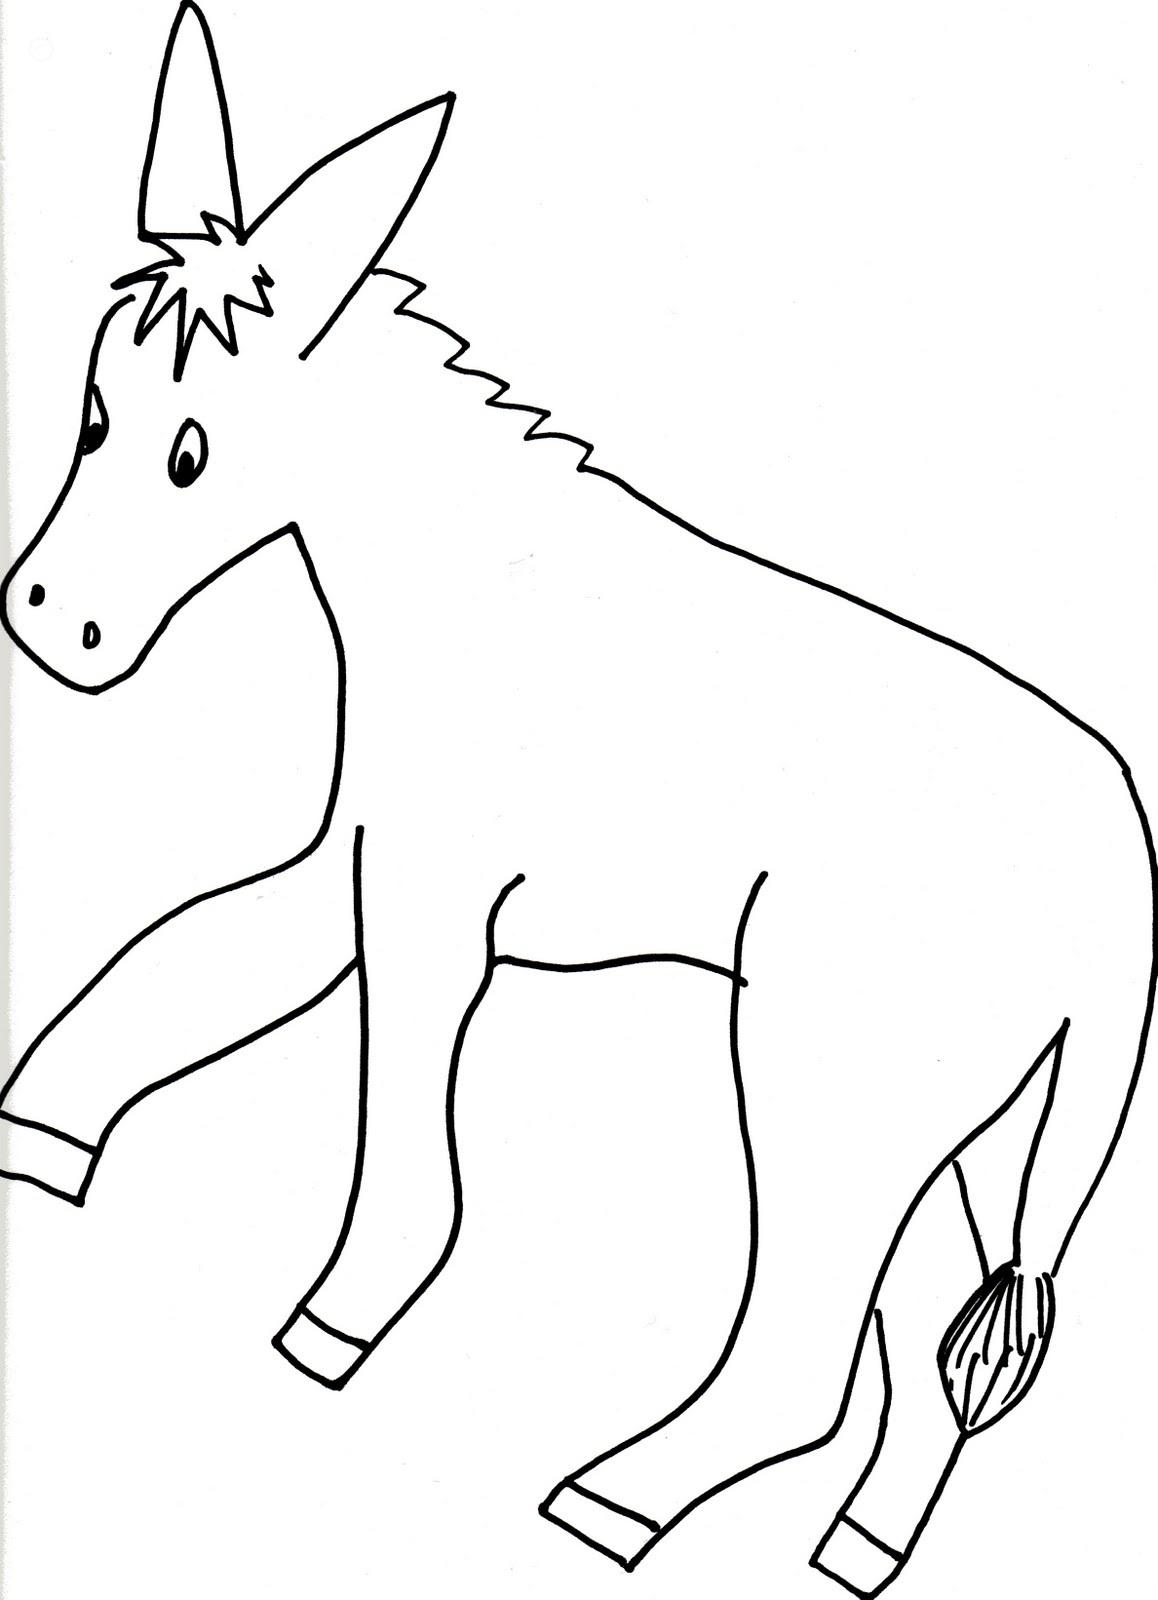 Pin The Tail On The Donkey Drawing At Getdrawings